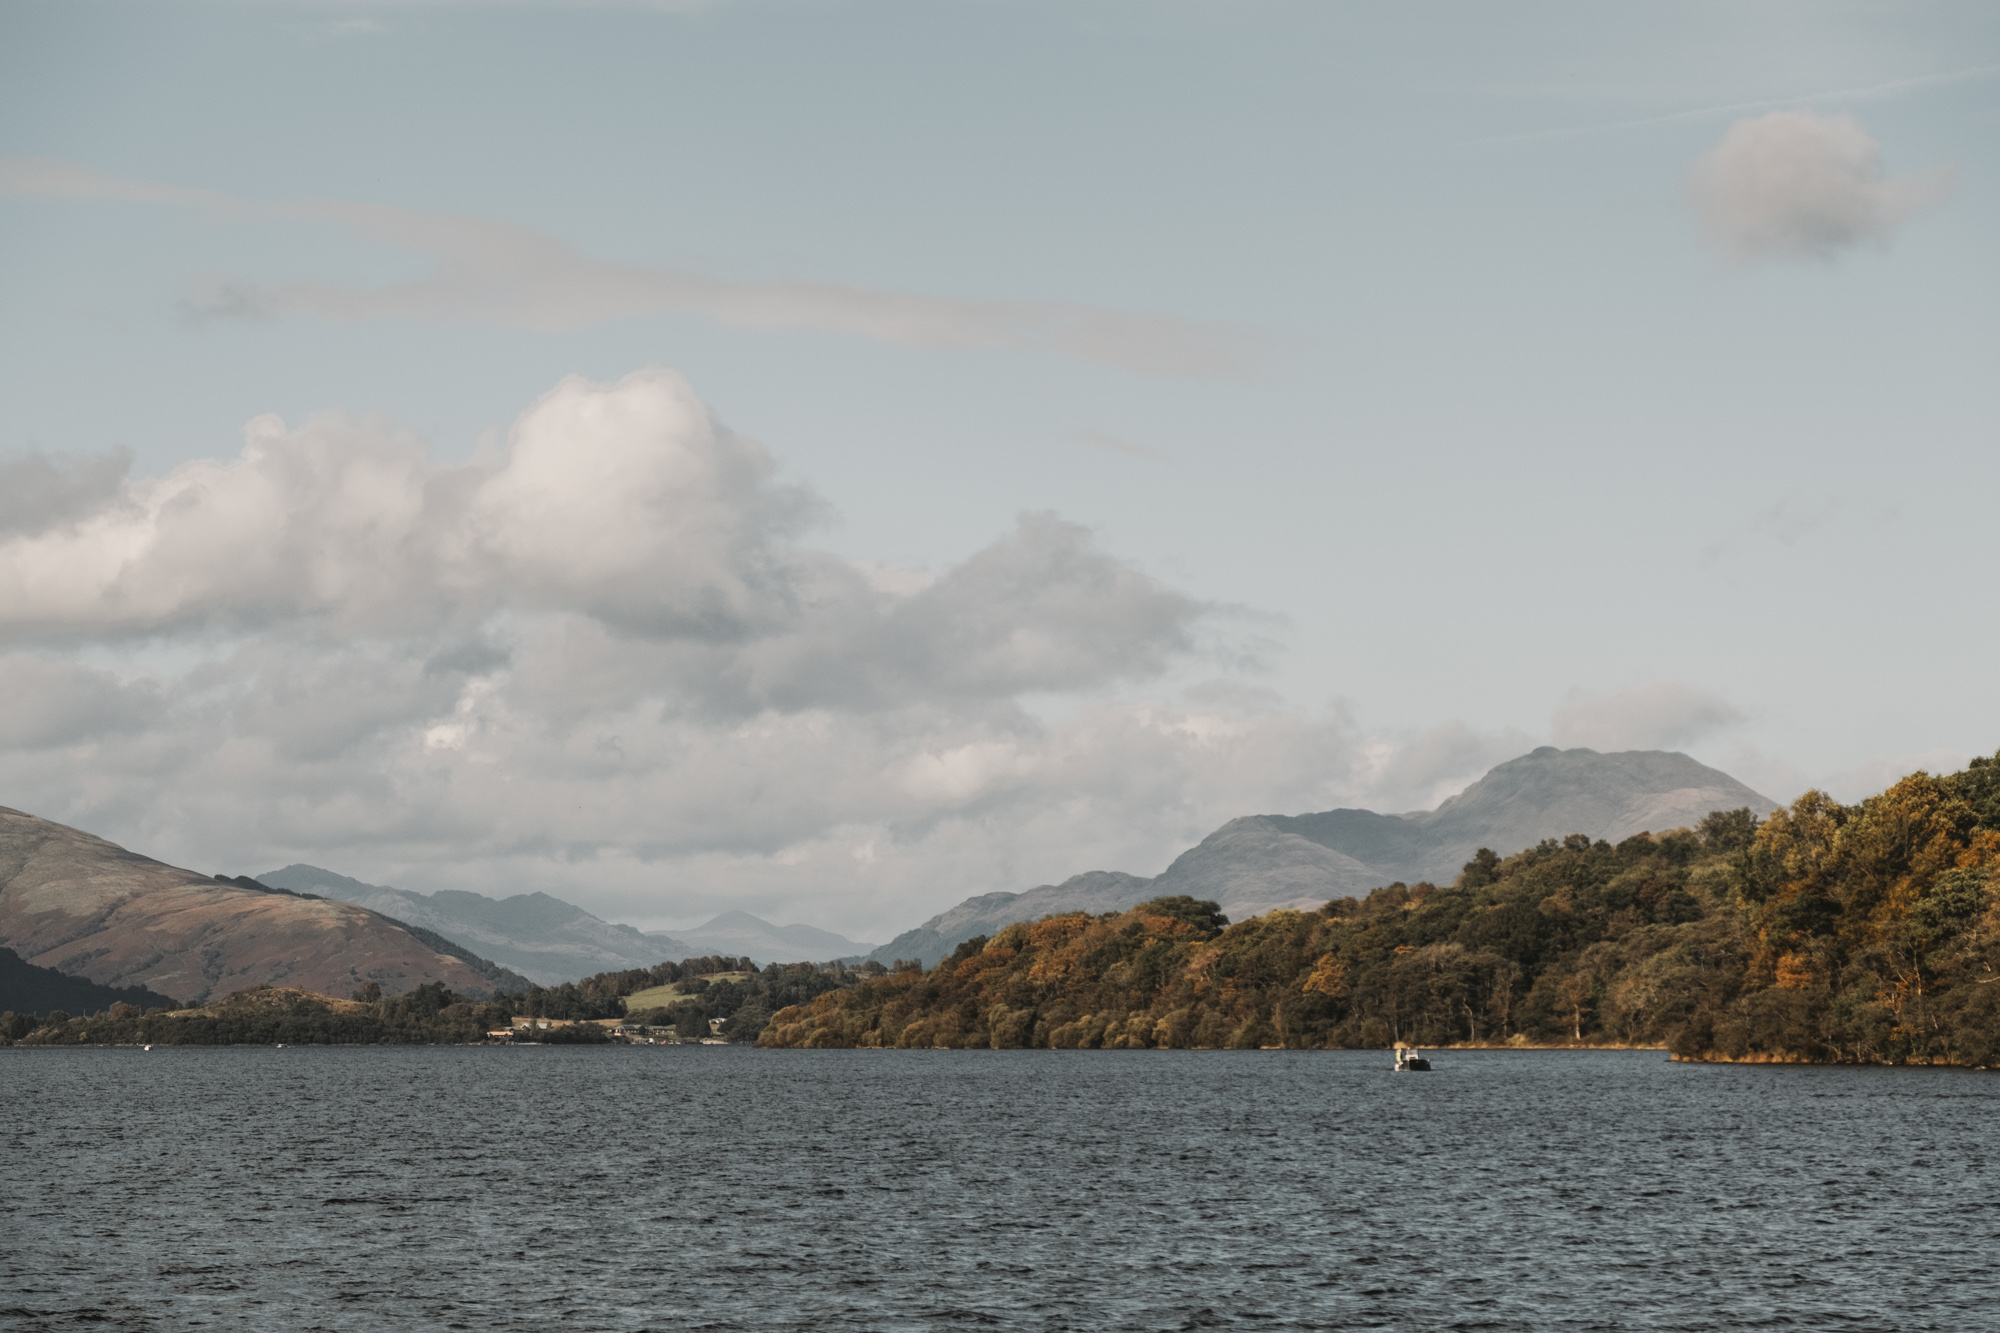 Ben Lomond in all its visible glory! The first mountain marking the beginning of the Highlands